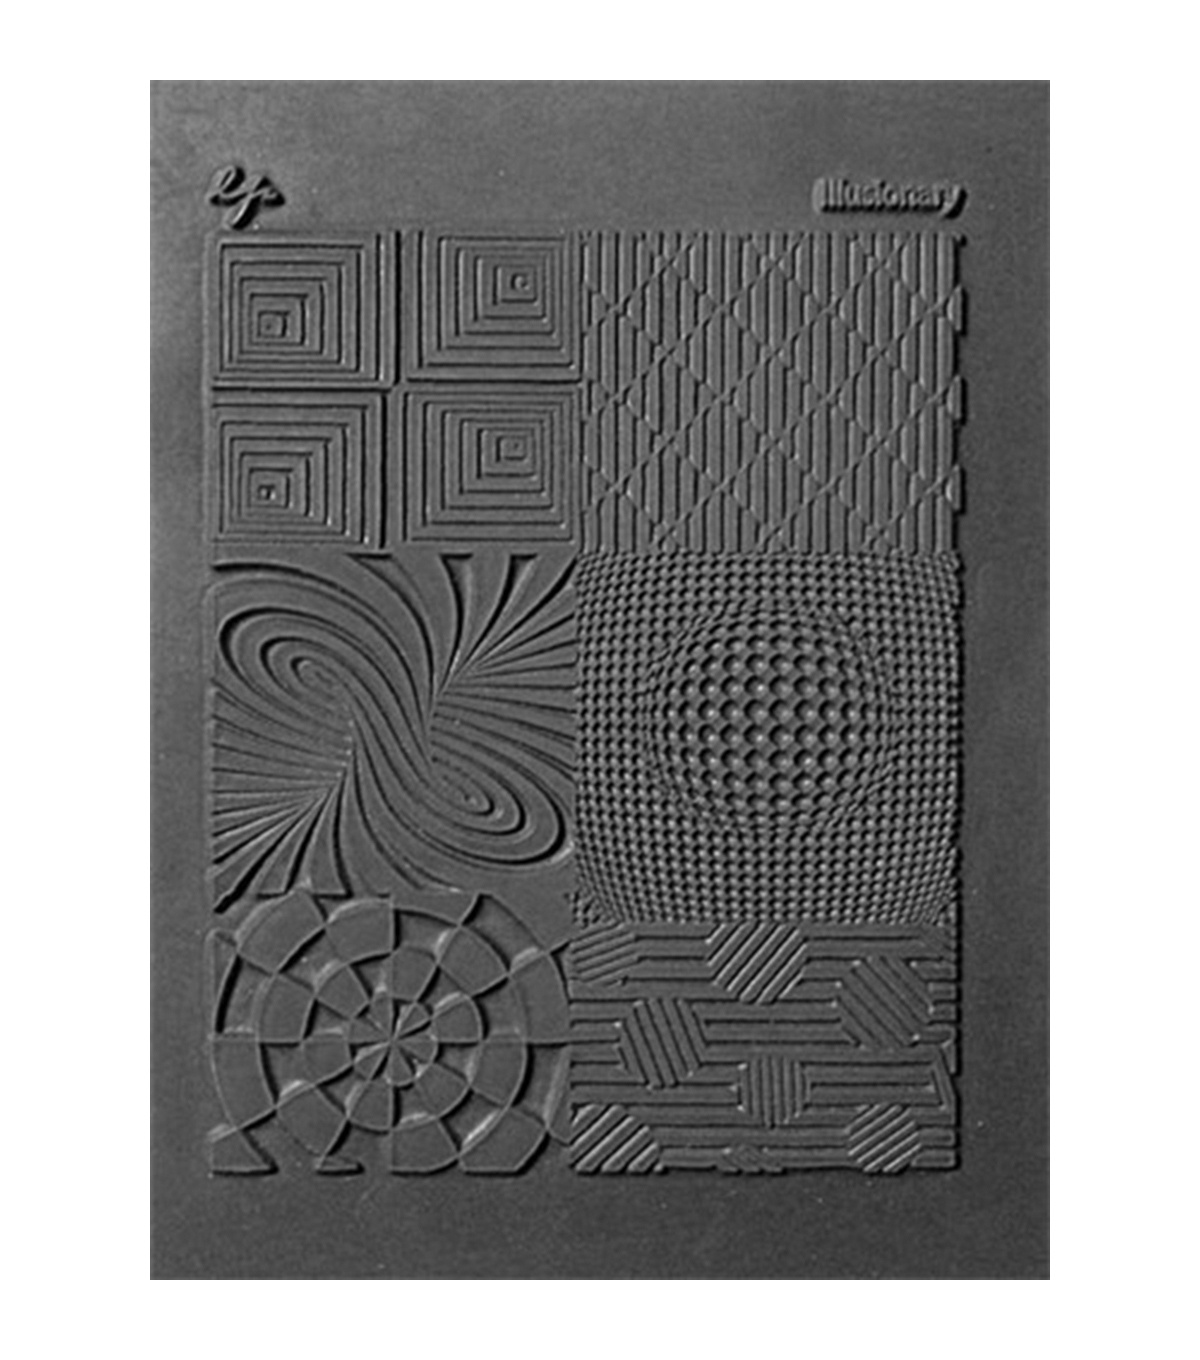 Great Create Pavelka Texture Stamp - Illusionary